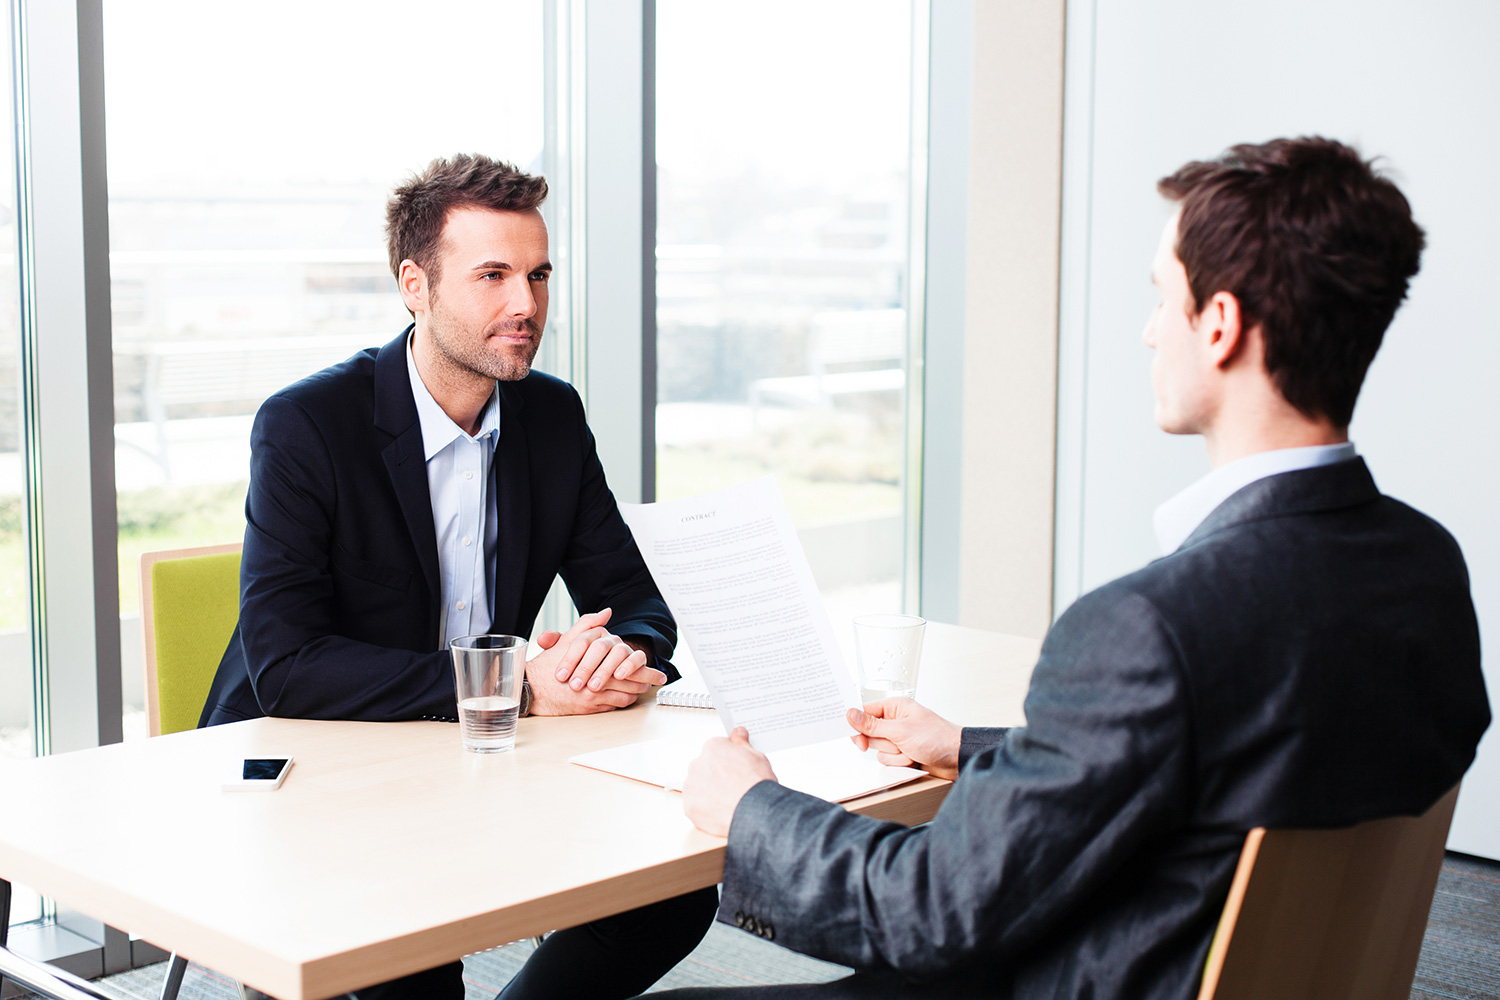 private meeting in an office